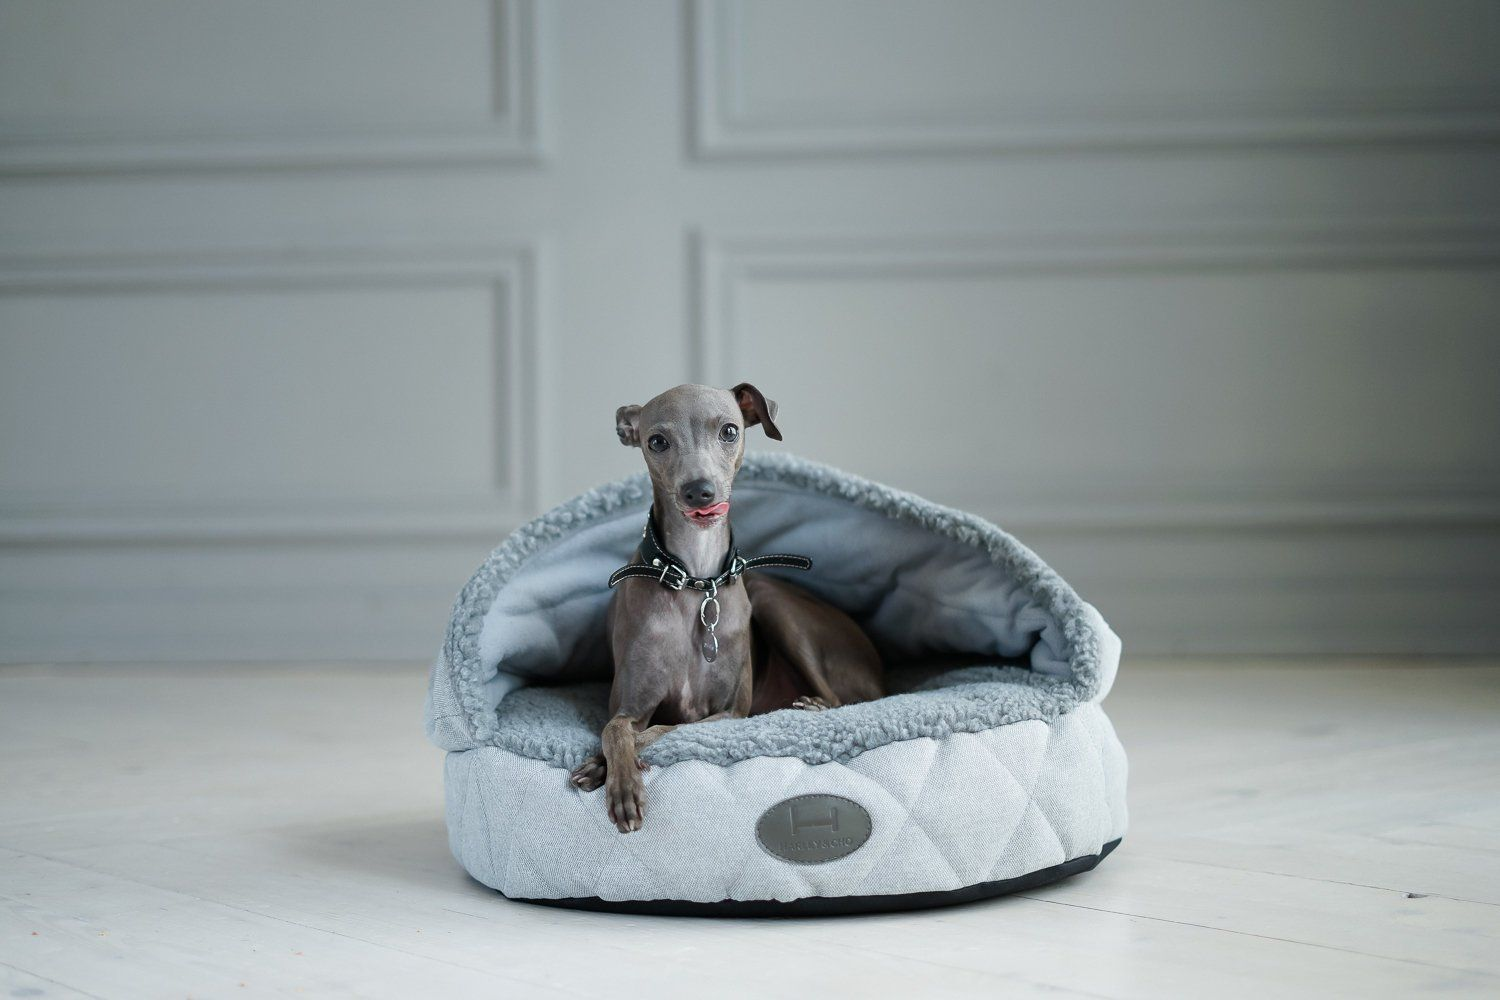 Plush Cave Bed For Dog Bed Cave Snuggly Bedding Italian Etsy Dog Bed Dog Hotel Mini Dogs